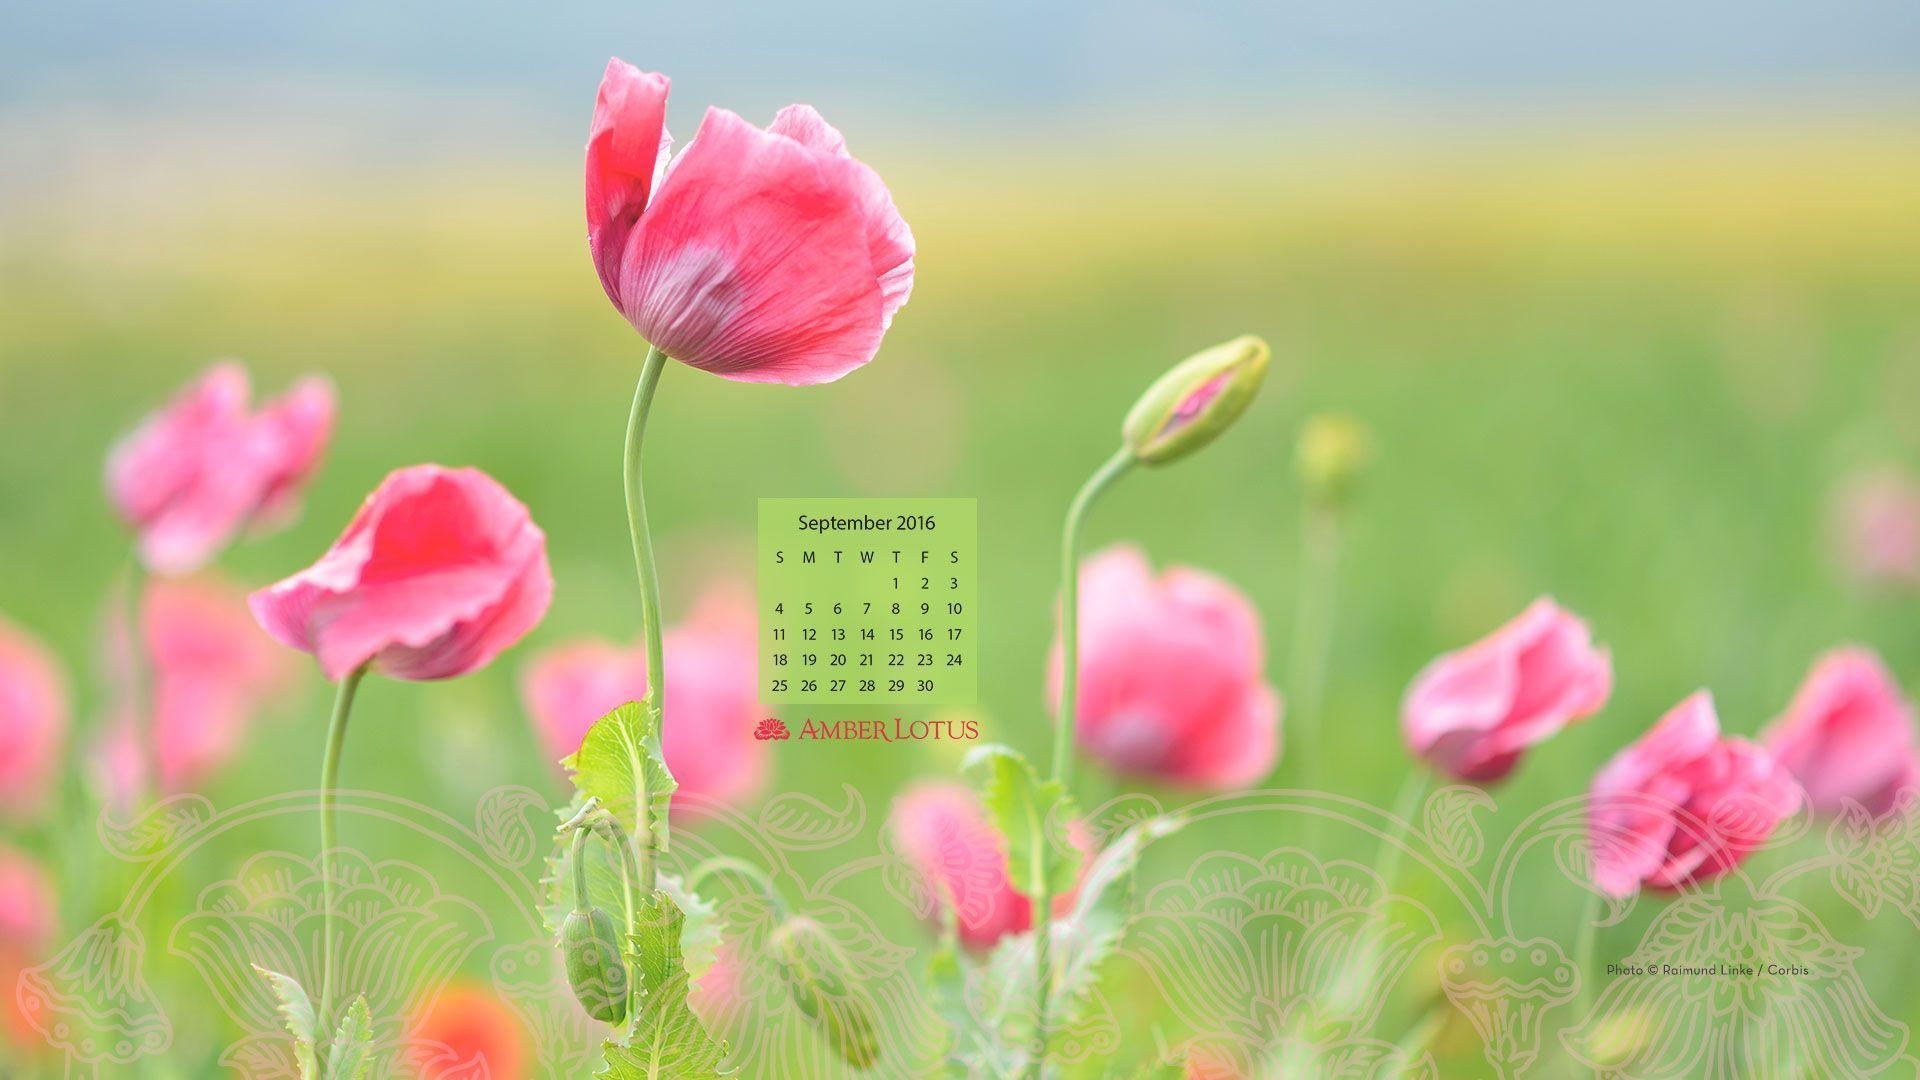 desktop wallpaper calendar september 2016 free to download